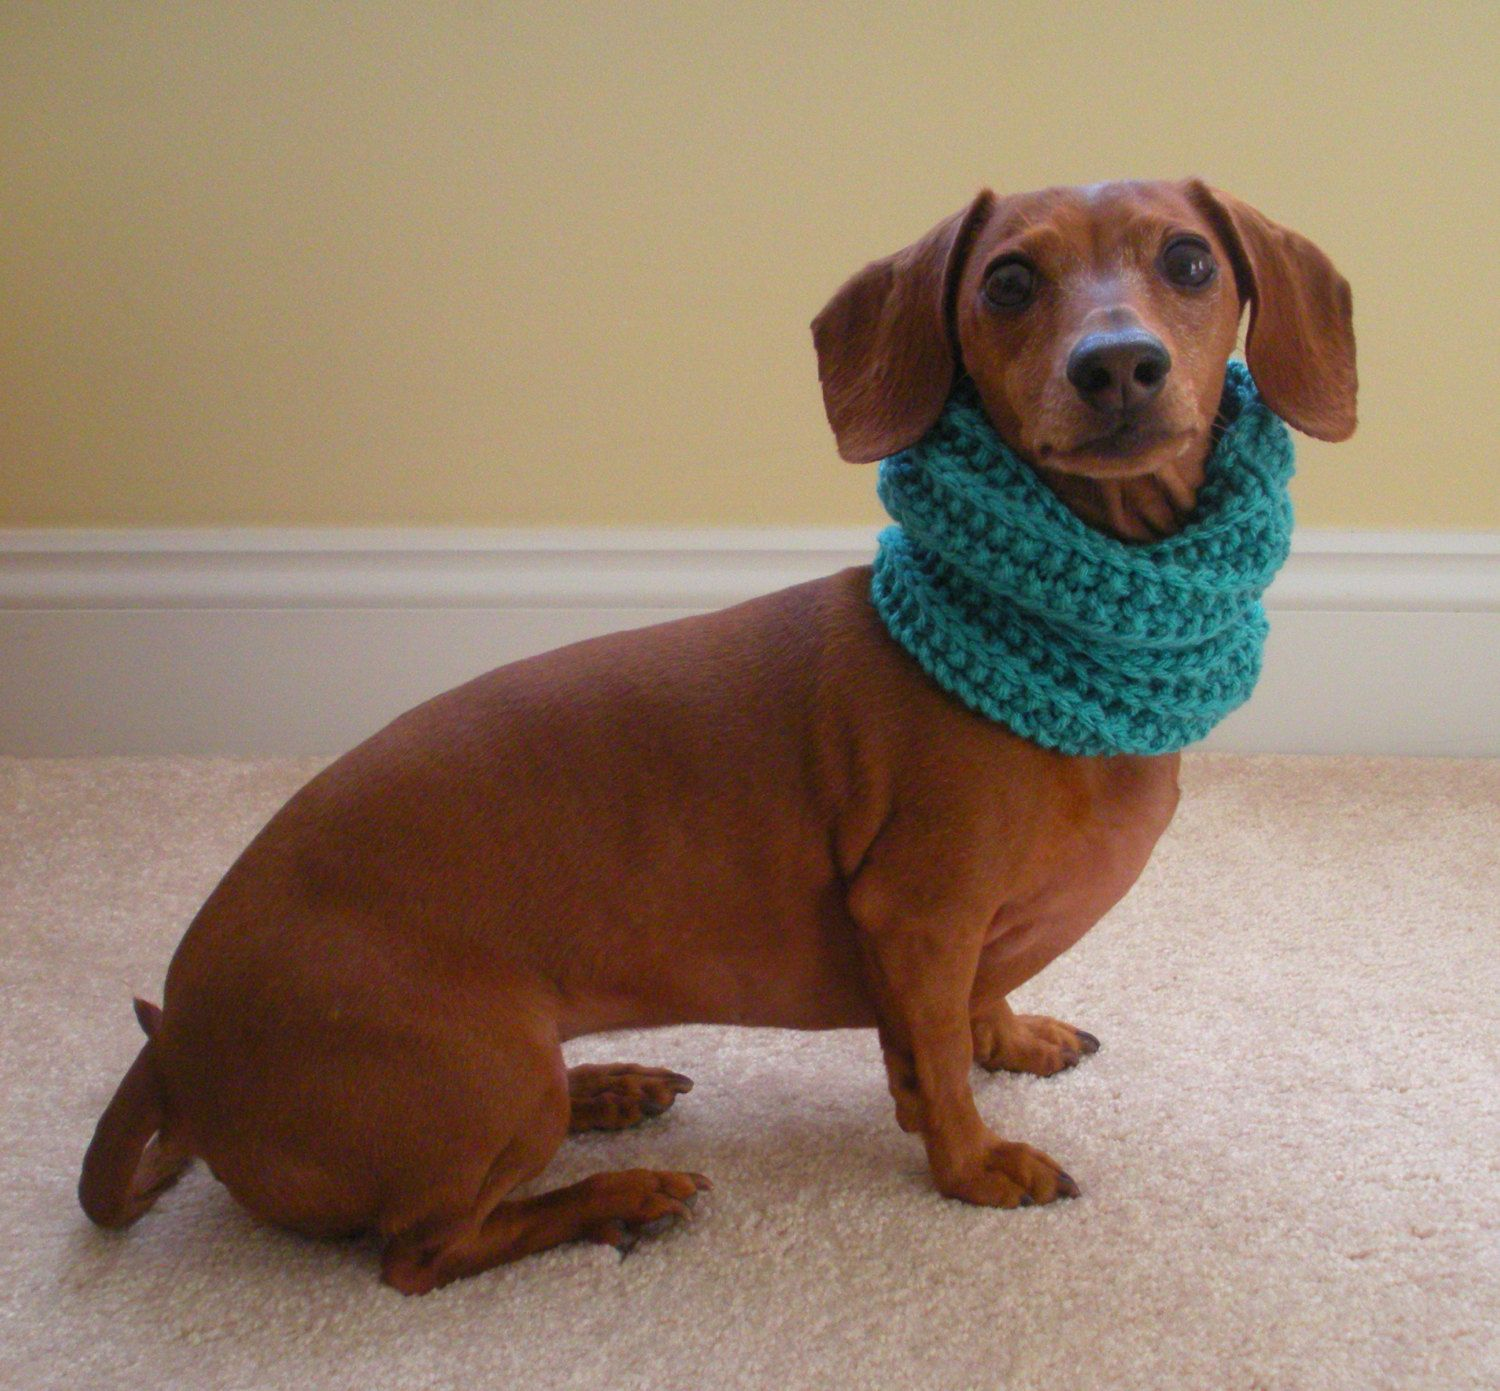 Dog neck warmer knit cowl pdf pattern small medium by craftymjc dog neck warmer knit cowl pdf pattern small medium by craftymjc 300 bankloansurffo Gallery